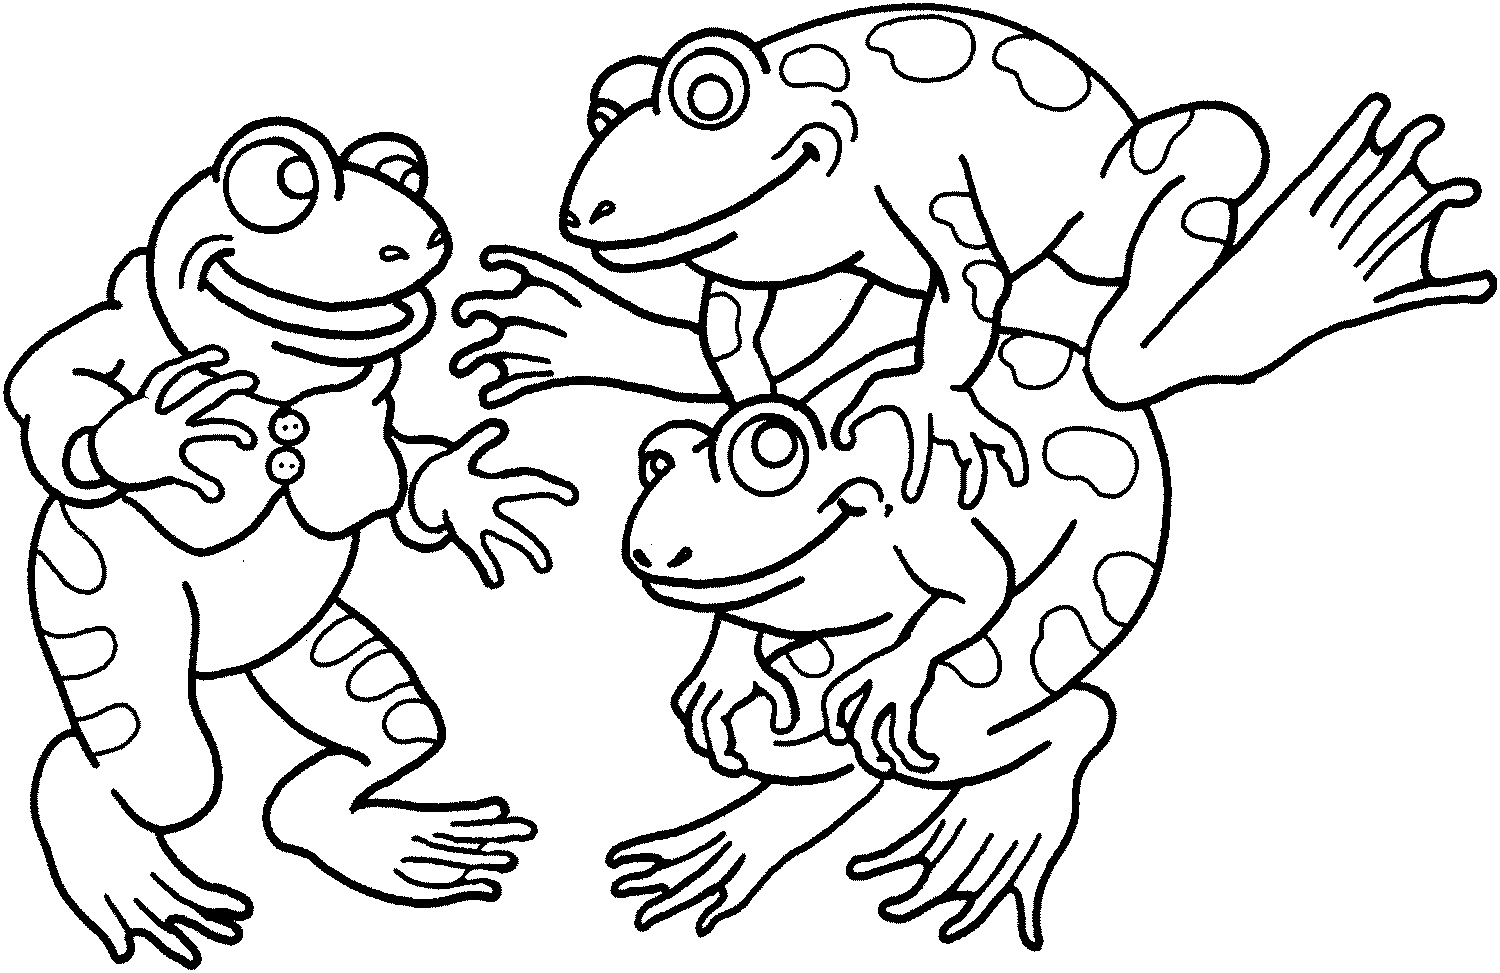 1500x973 Frog Coloring Pages